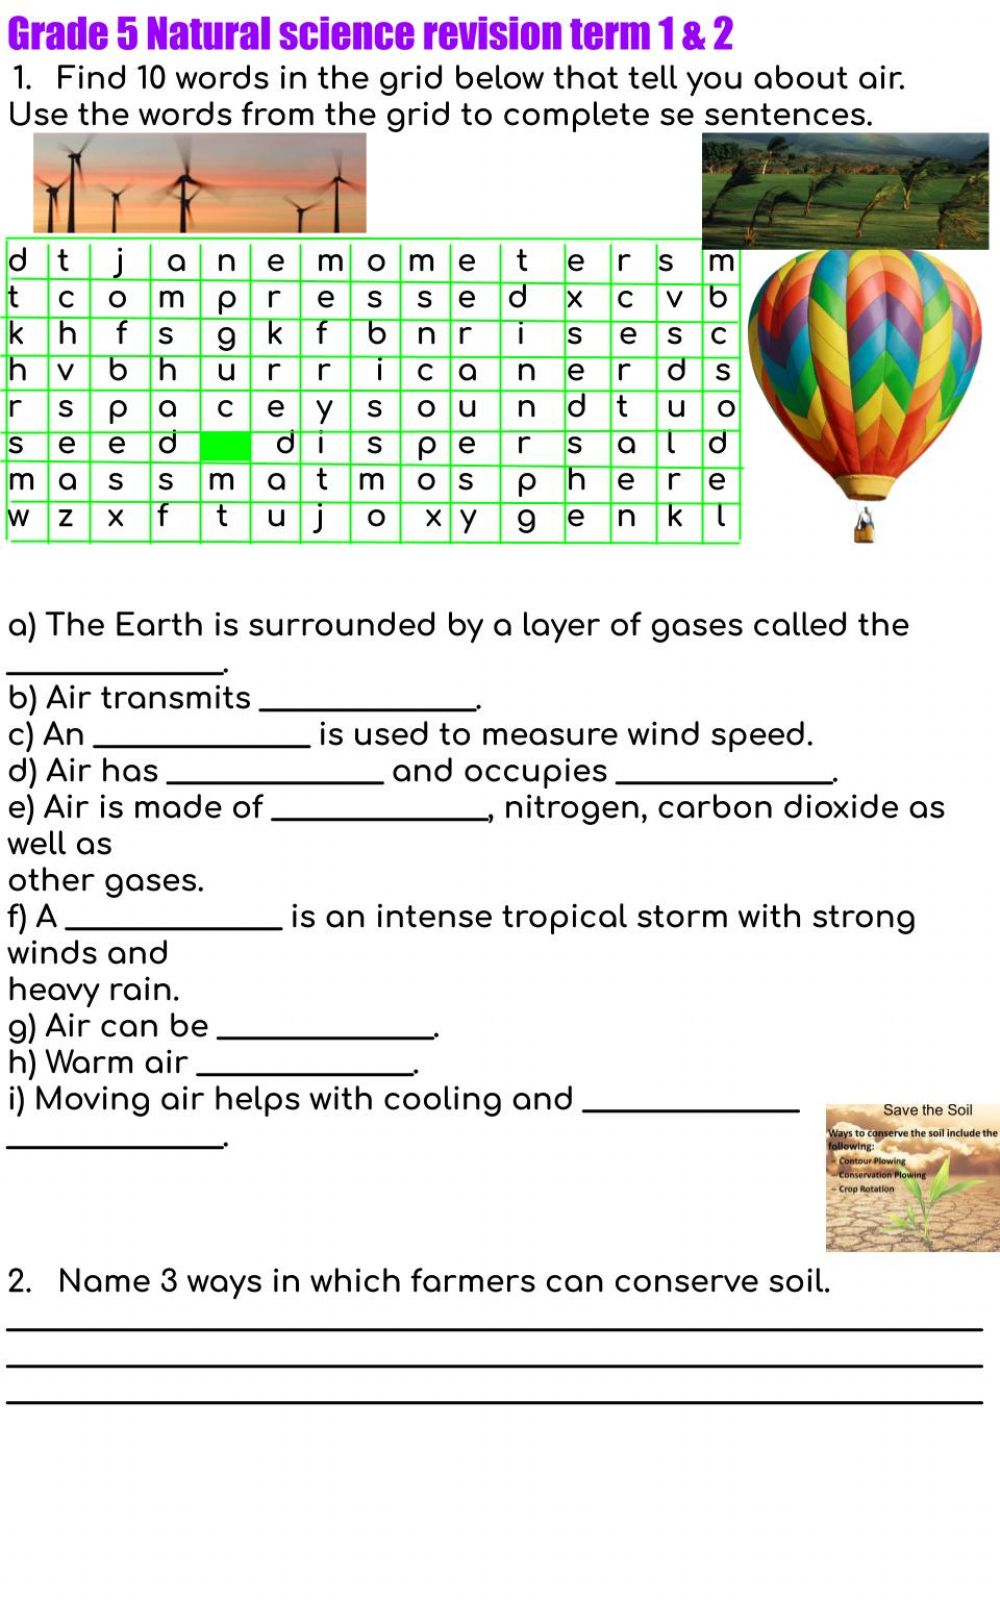 hight resolution of Grade 5 revision term 1 \u0026 2 exercise